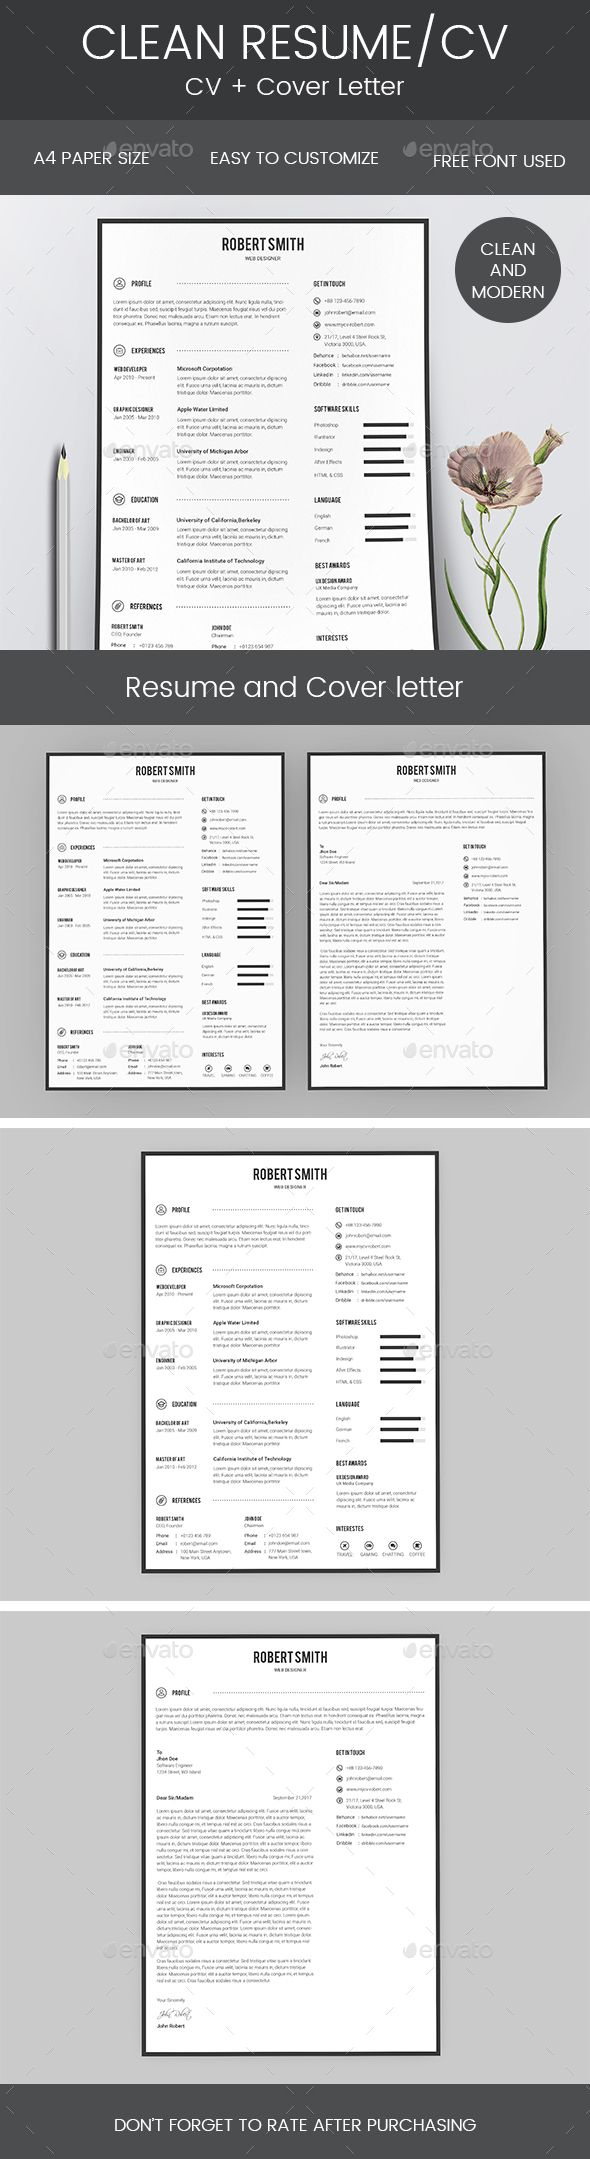 """Description: """"Hello and Thank You for purchasing my file. If you need any help using it pleasefeel free to contact me via my Graphic River profile"""" Features: Easy CustomizationClean & ModernPixel perfact Dimension ¨C 8.5 inch X 11 inch Free fonts & IconsCMYK Color Print Ready Format Icon:Font Awesome"""